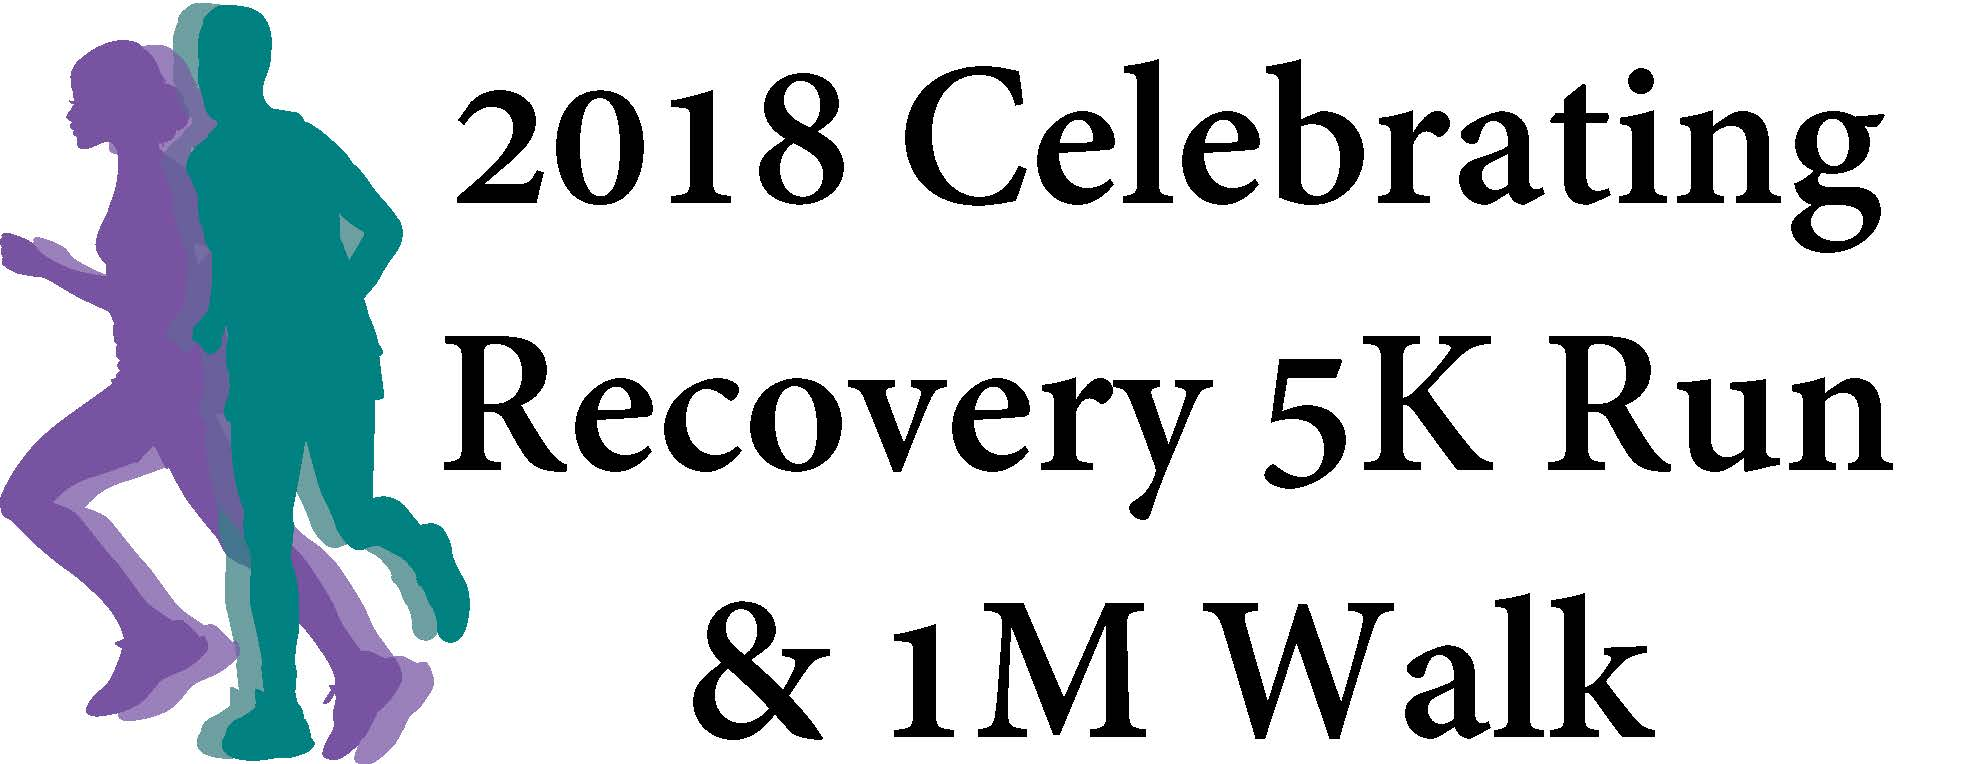 Recovery 5k